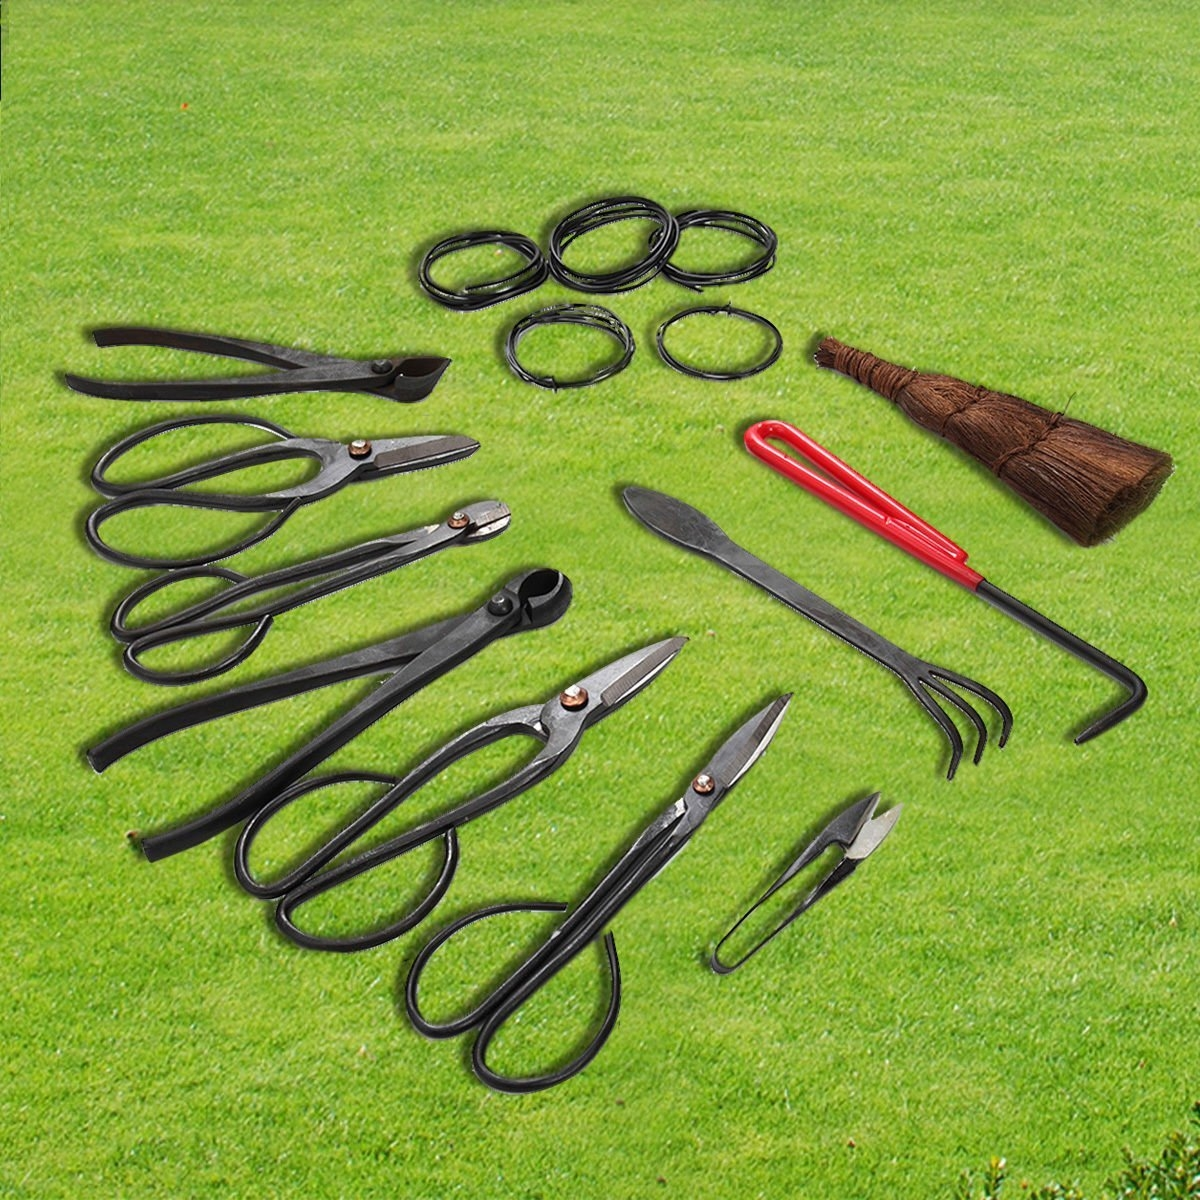 New MTN-G 10 PCS Bonsai Tools Set with Tool Roll Wires Case New Carbon Steel Shear Set by MTN Gearsmith